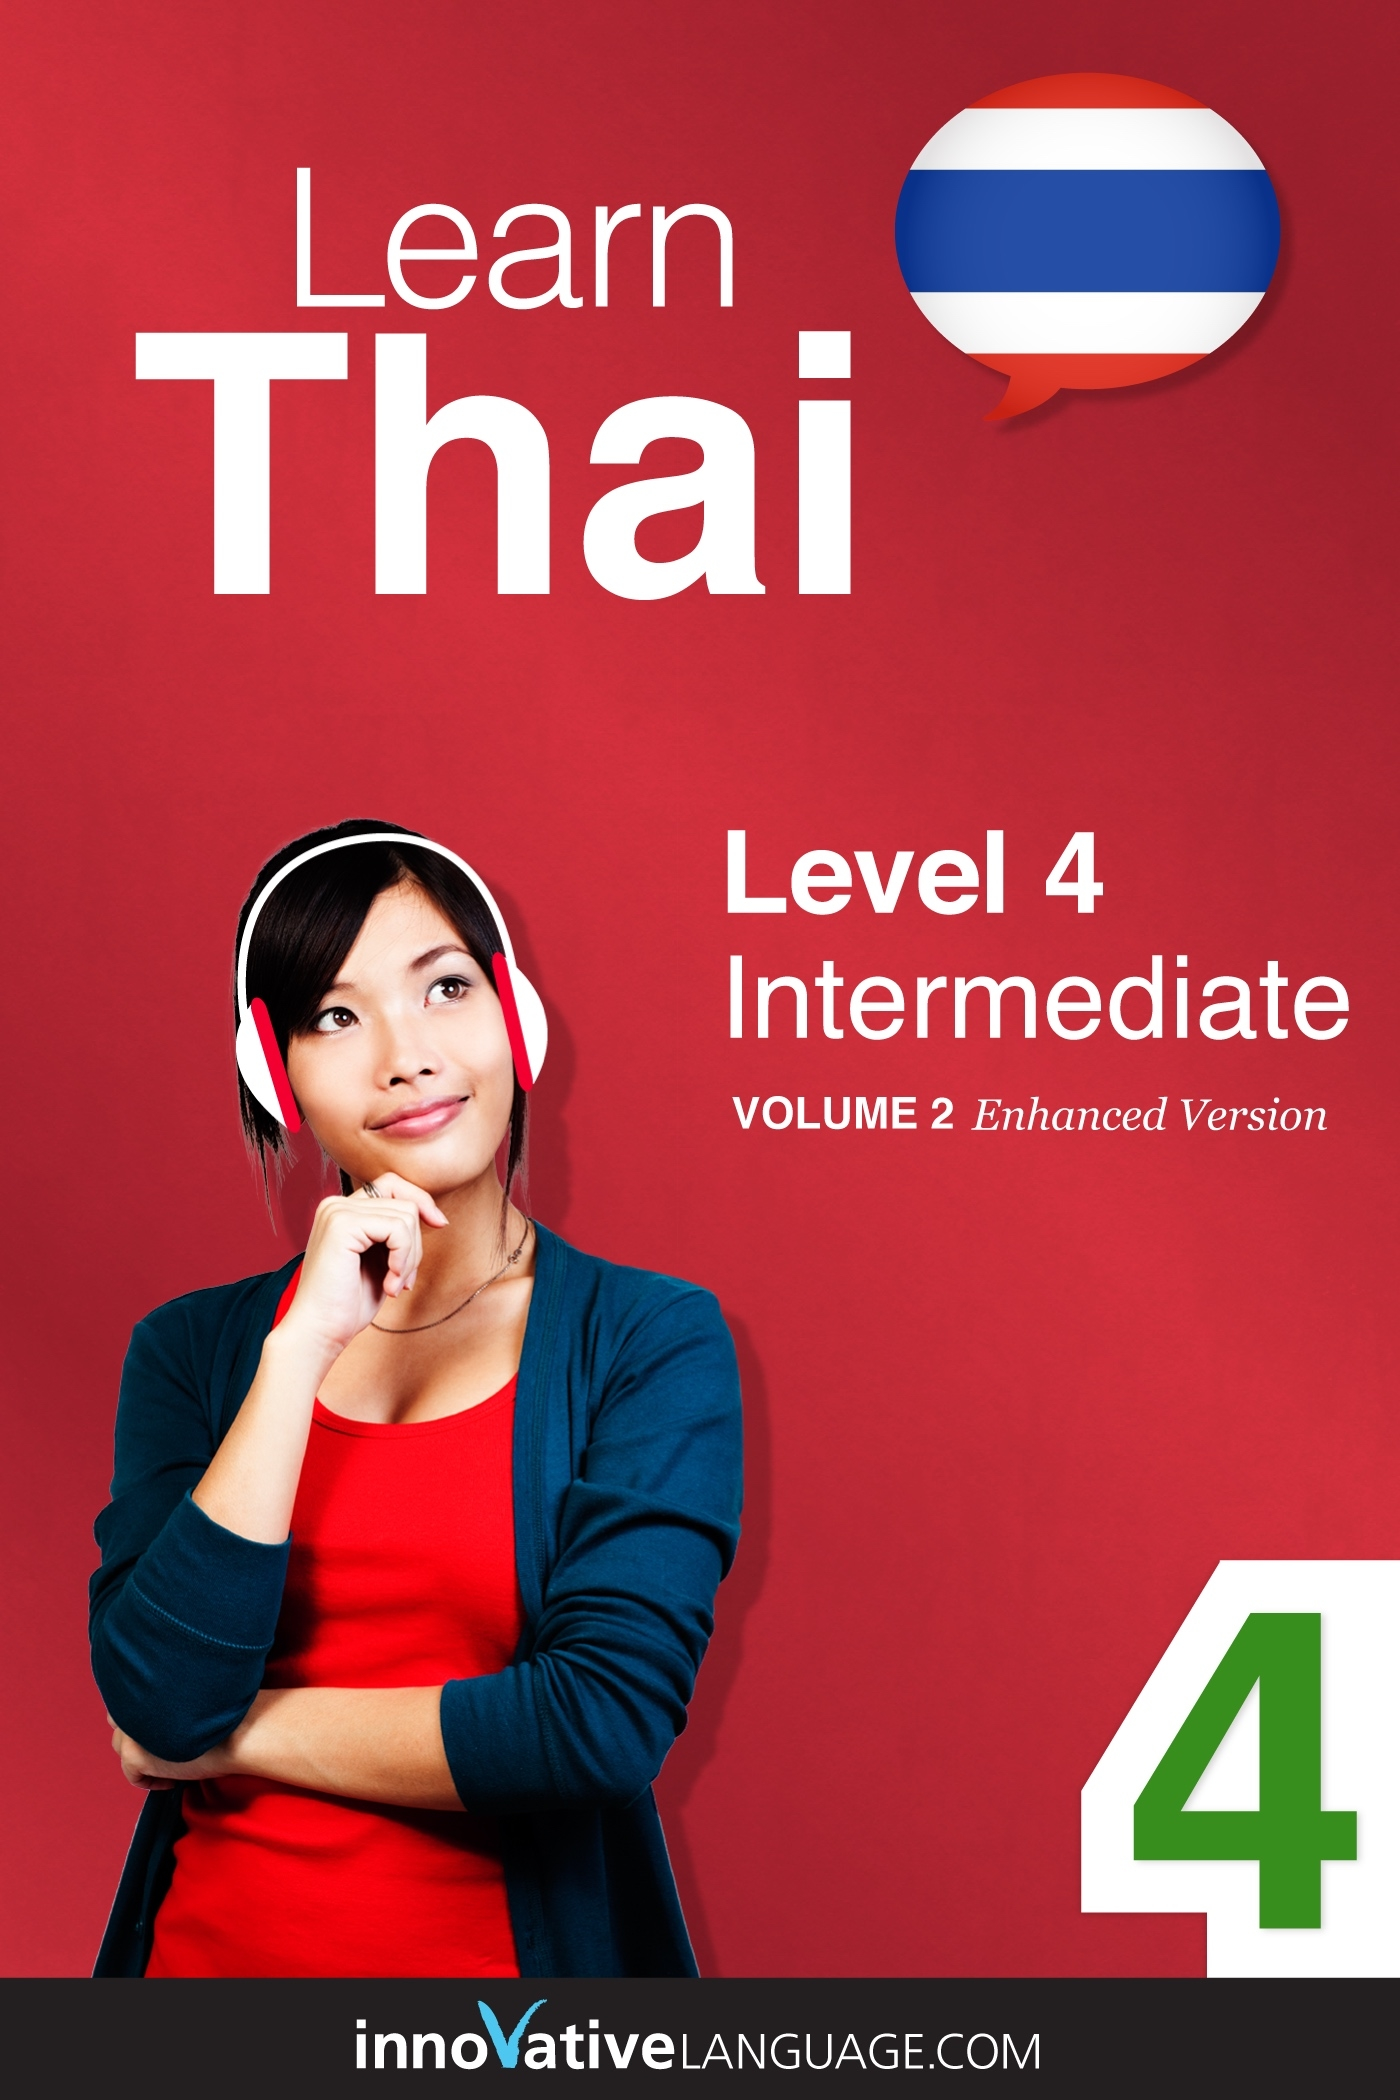 [eBook] Learn Thai - Level 4: Intermediate, Volume 2